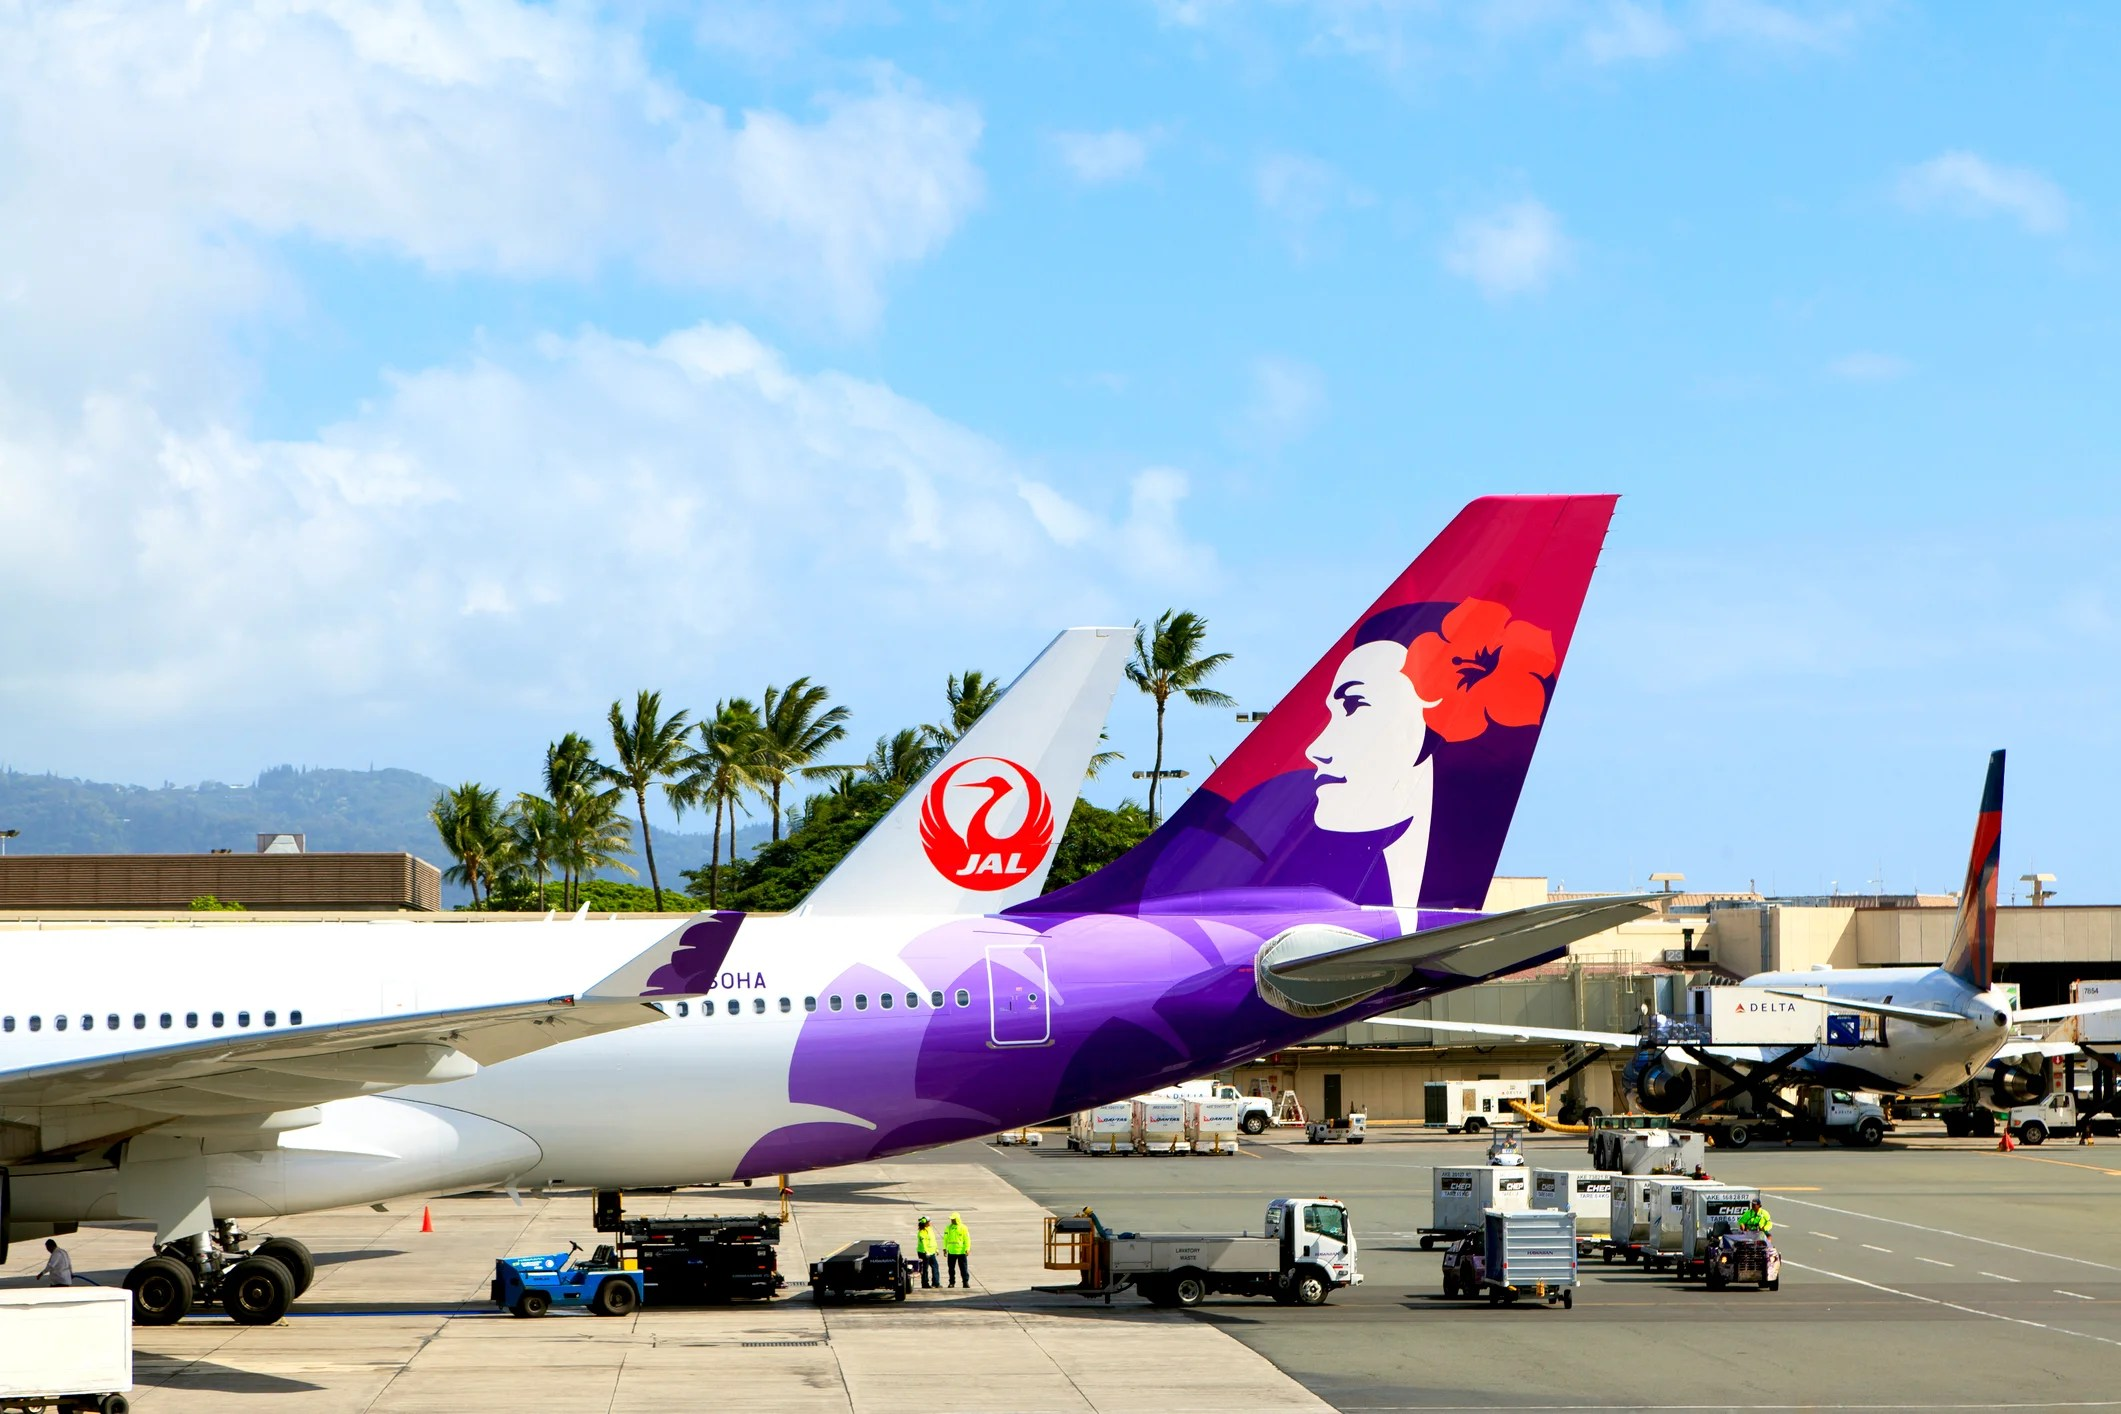 U.S. limits Hawaiian Airlines and JAL's planned partnership